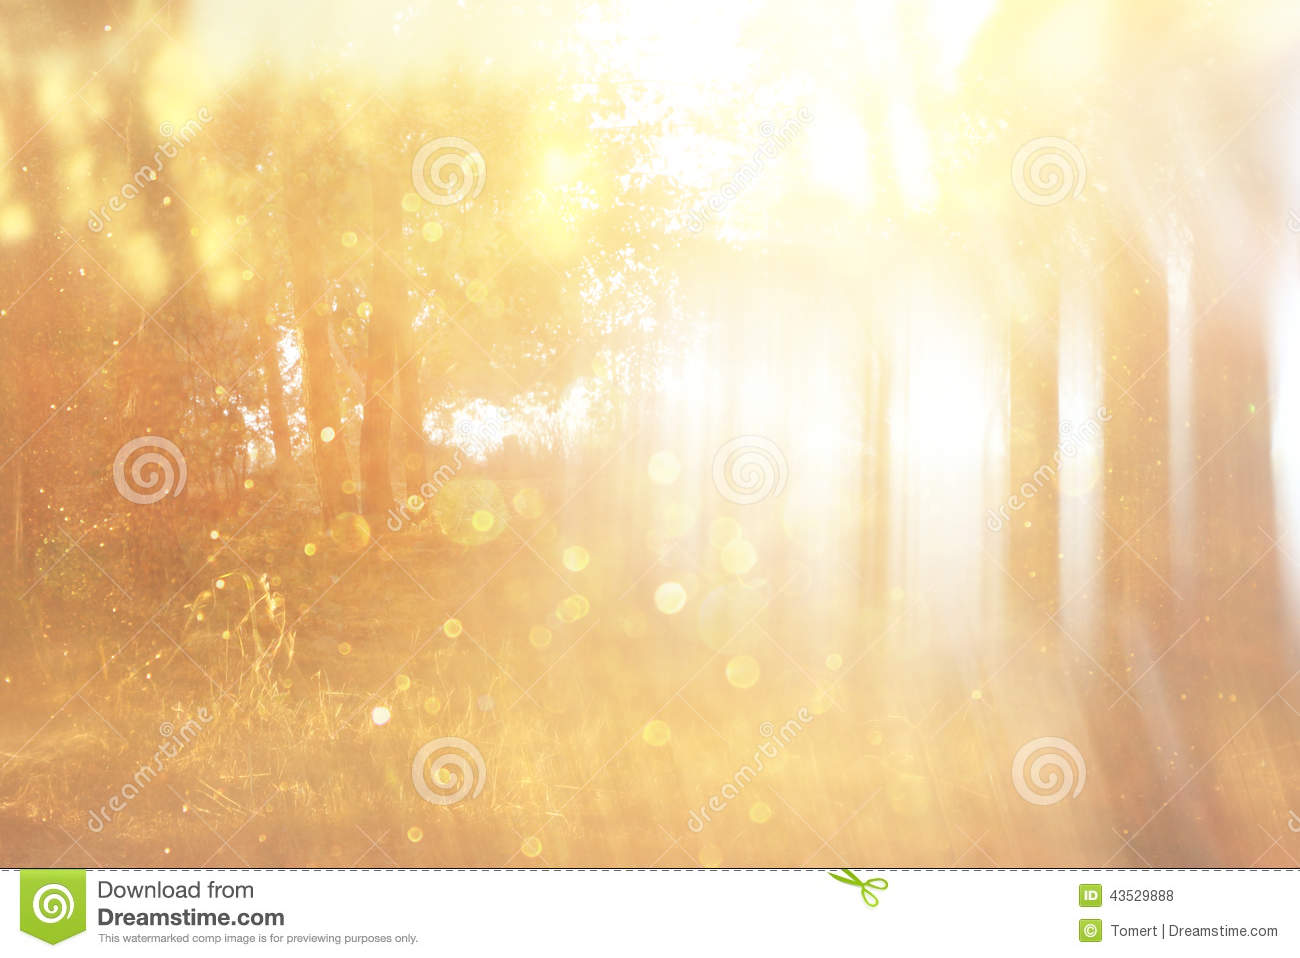 Blurred Abstract Photo Of Light Burst Among Trees And